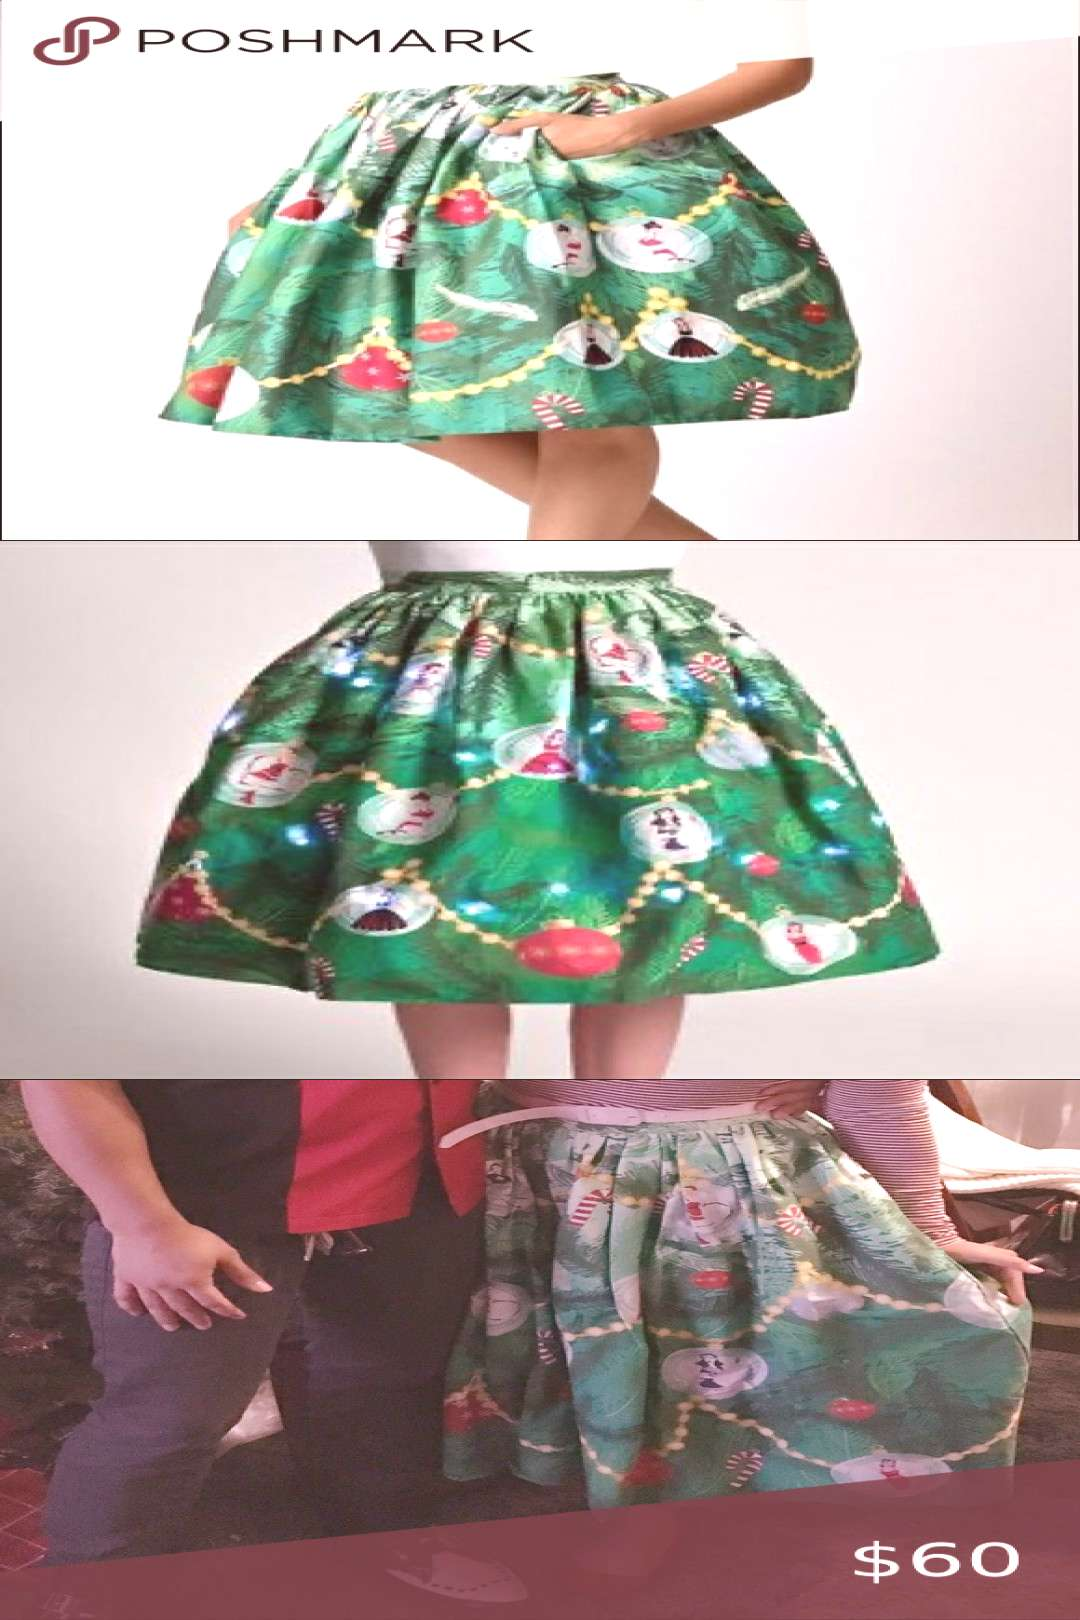 Unique Vintage Christmas Tree Skirt -size M -has pockets! -green lining - full circle skirt -zip